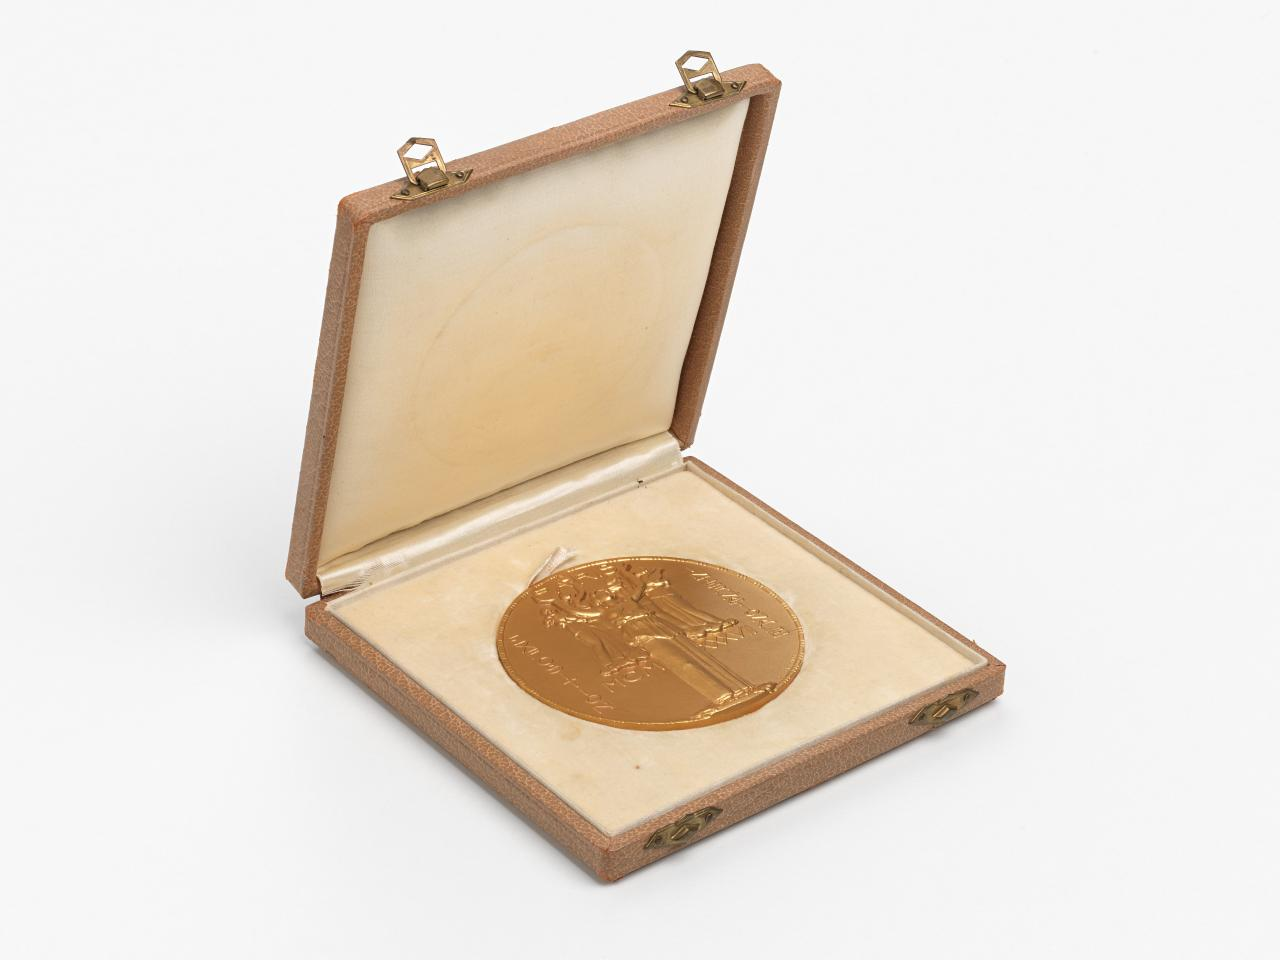 International Exposition of Arts and Techniques in Modern Life, Paris, medal